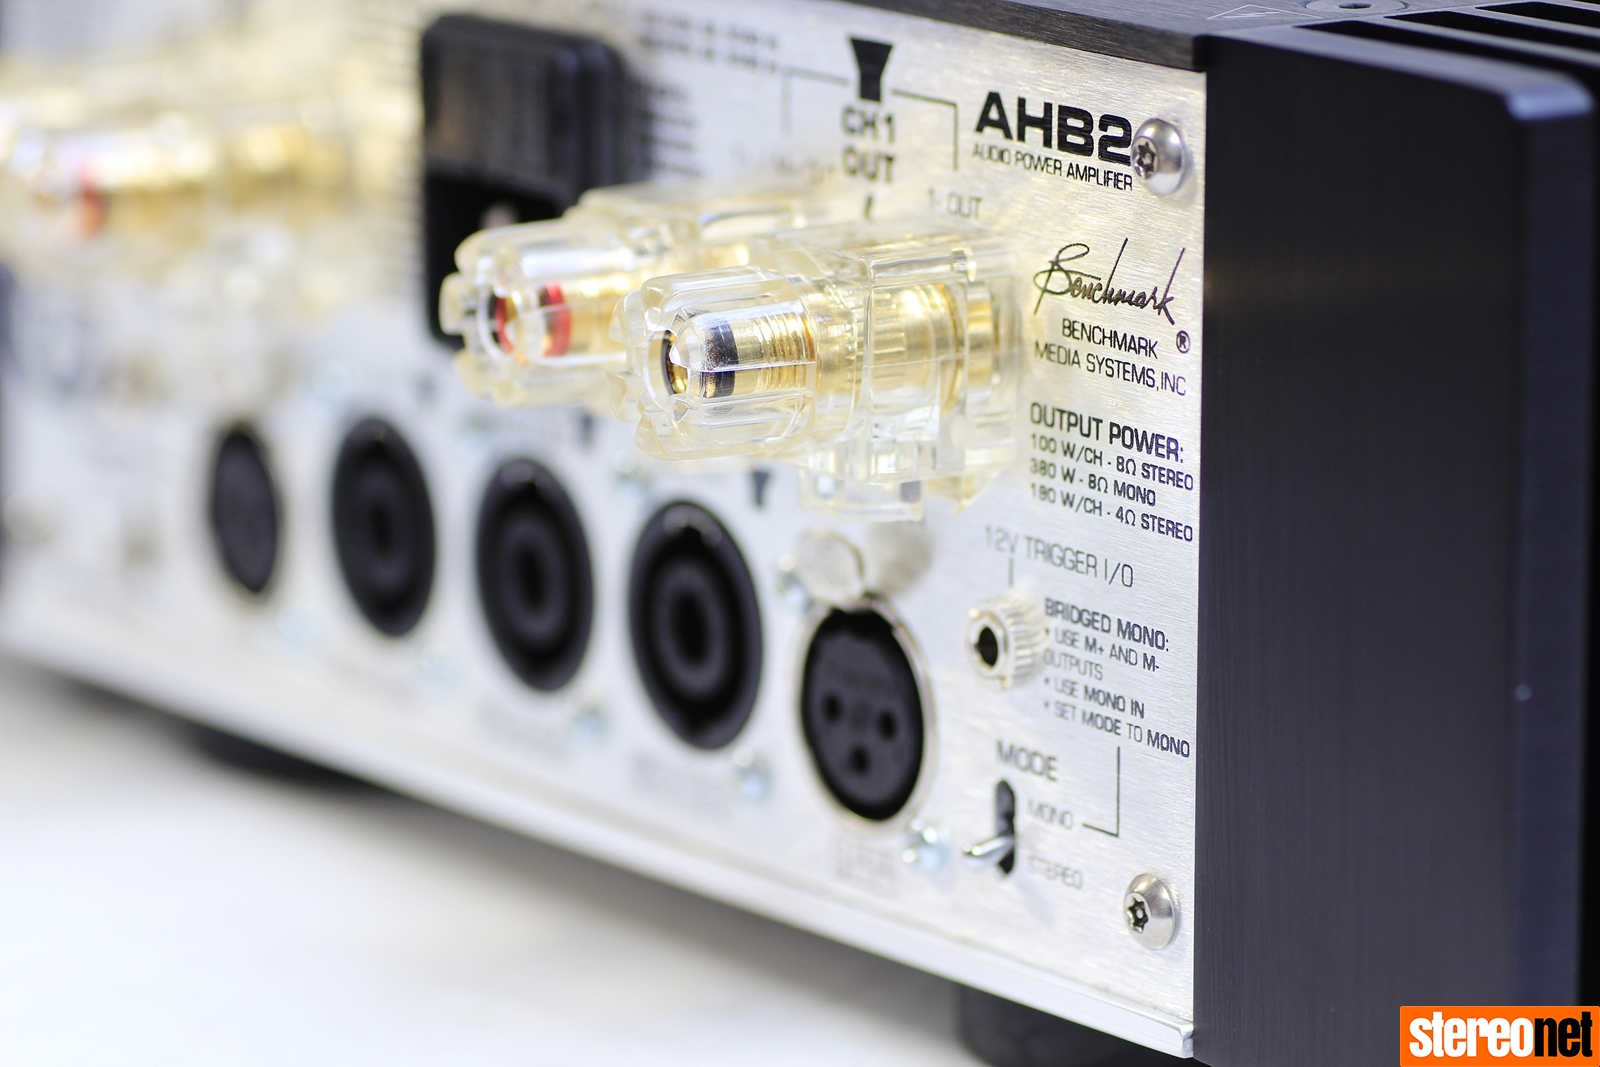 Benchmark AHB2 Review